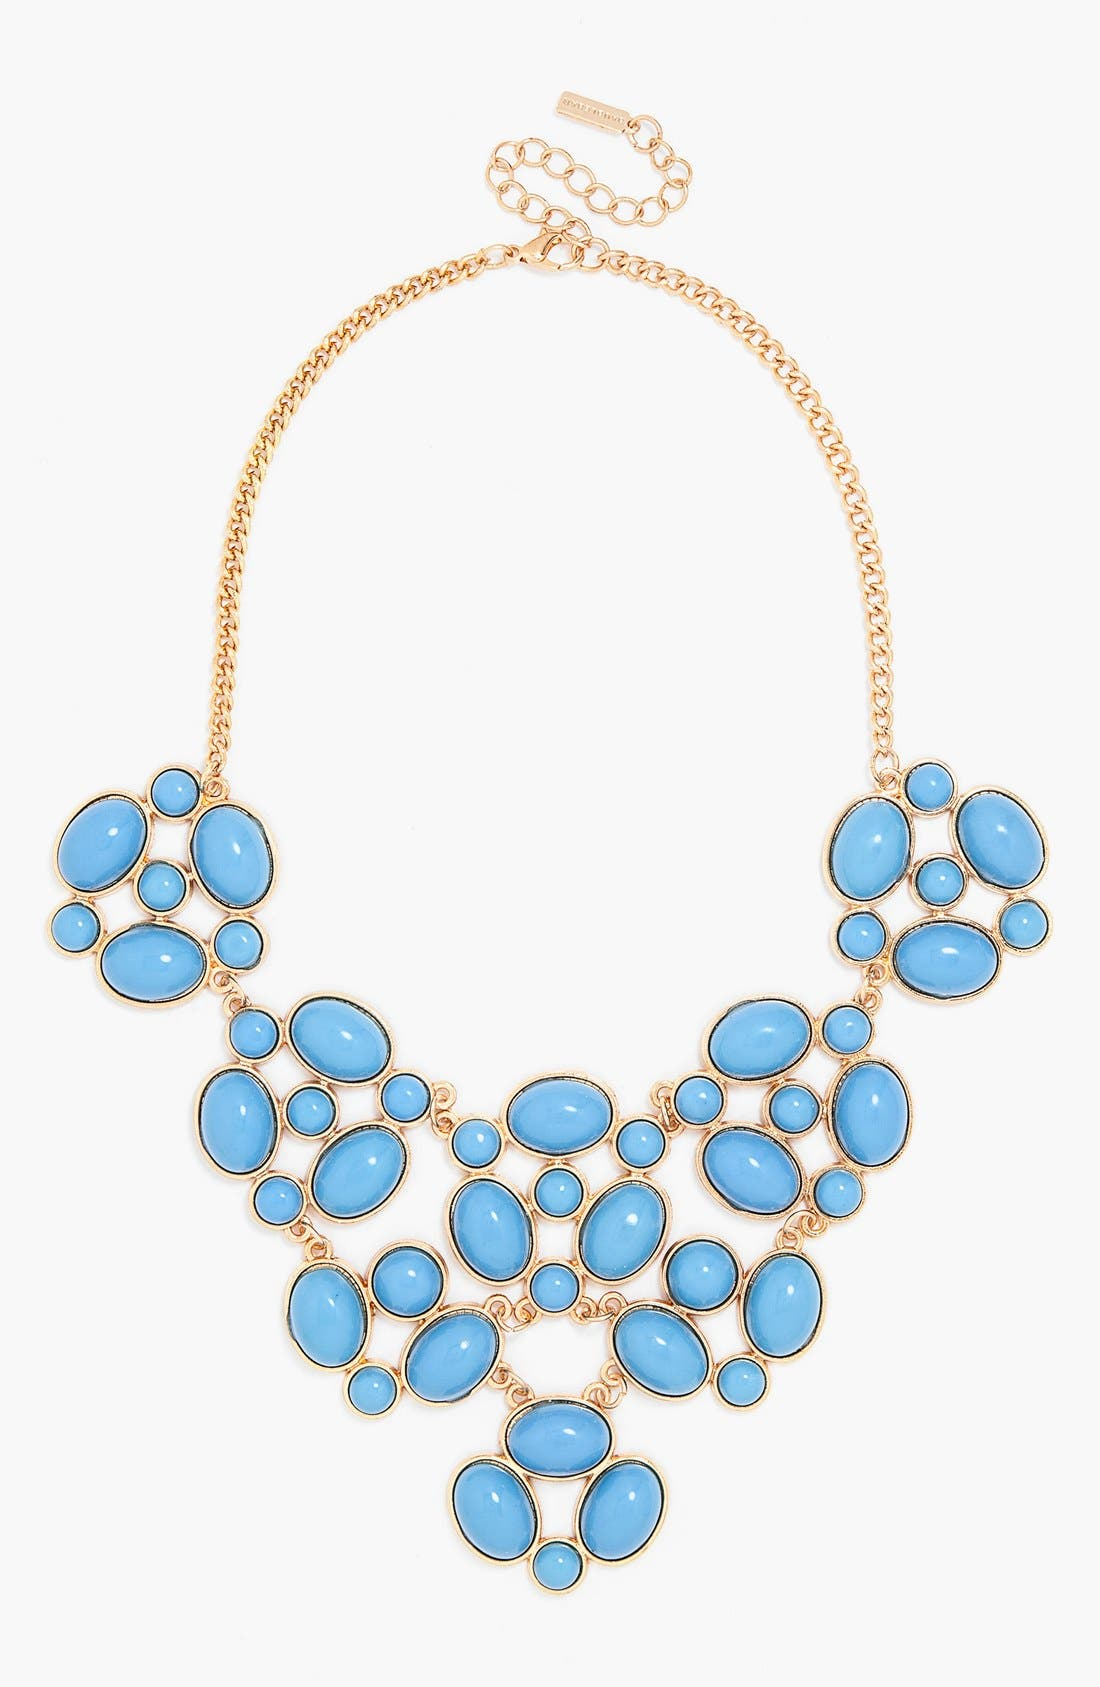 Alternate Image 1 Selected - BaubleBar 'Poseidon Stonework' Bib Necklace